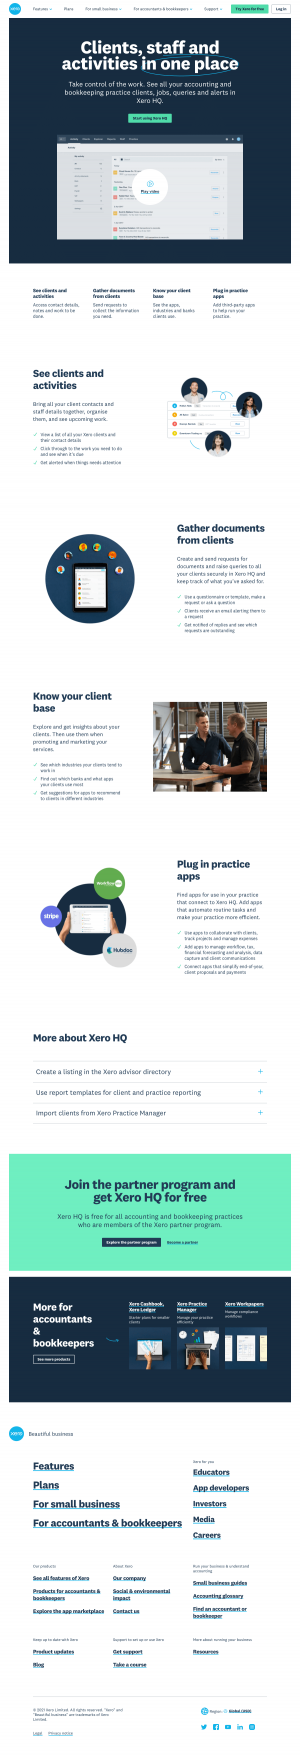 Xero – Features page 2